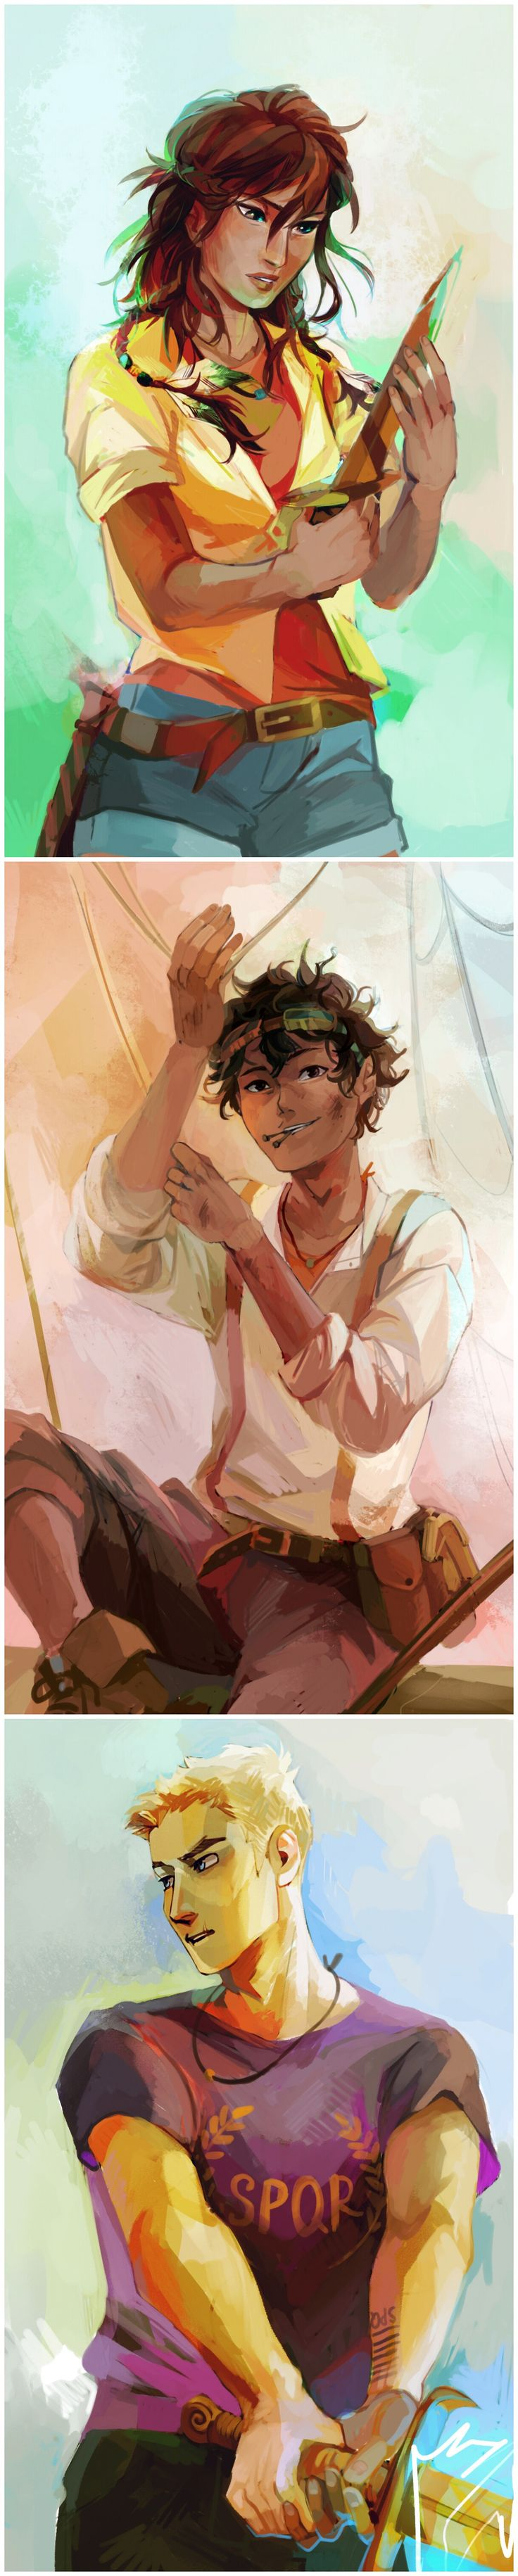 Viria: Heroes of Olympus trio for Rick Riordan's website! I loved drawing Leo so much I think he's probably one of the most well-turned portraits